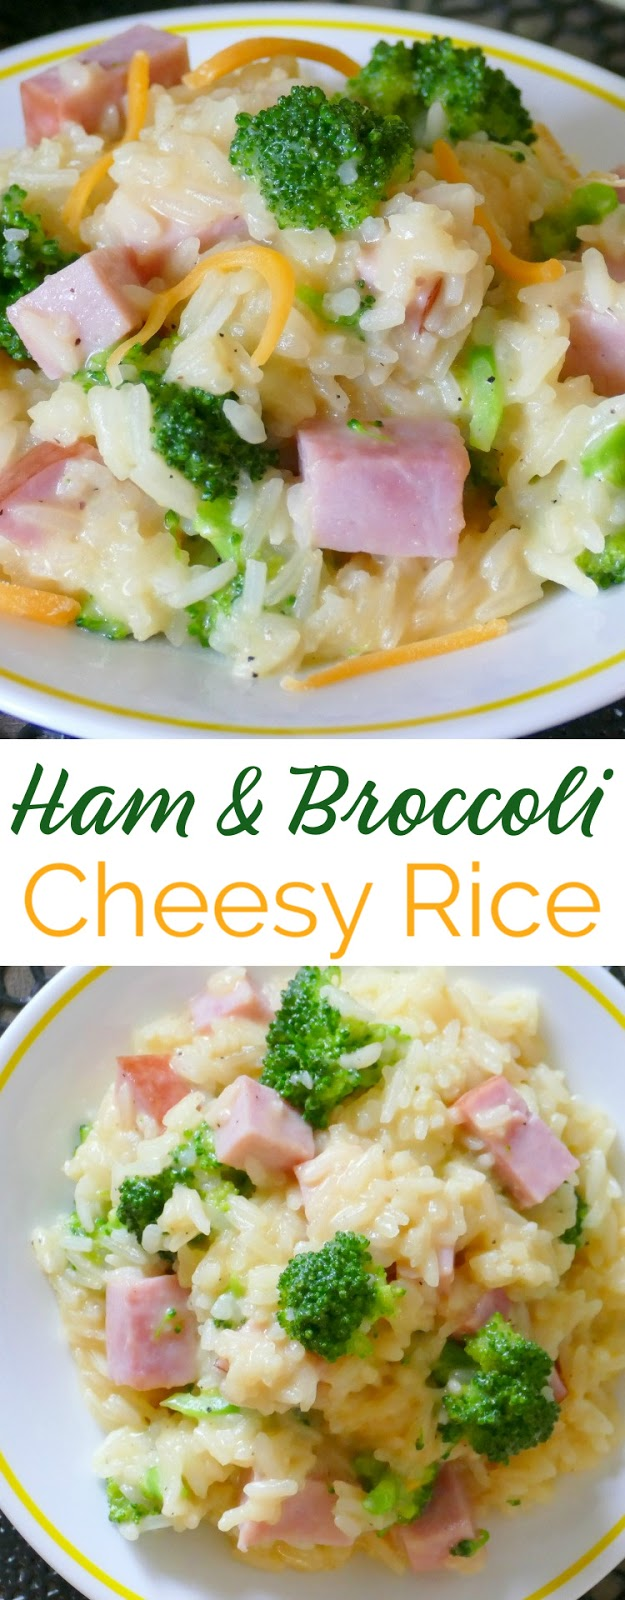 This ham cheesy broccoli rice dinner skillet is easy, delicious and one you'll want to add to your menu plan! Use any cheese you prefer and great for using leftover Easter or Christmas ham! Ready in less than 30 minutes which makes it perfect for a simple and affordable weeknight meal!